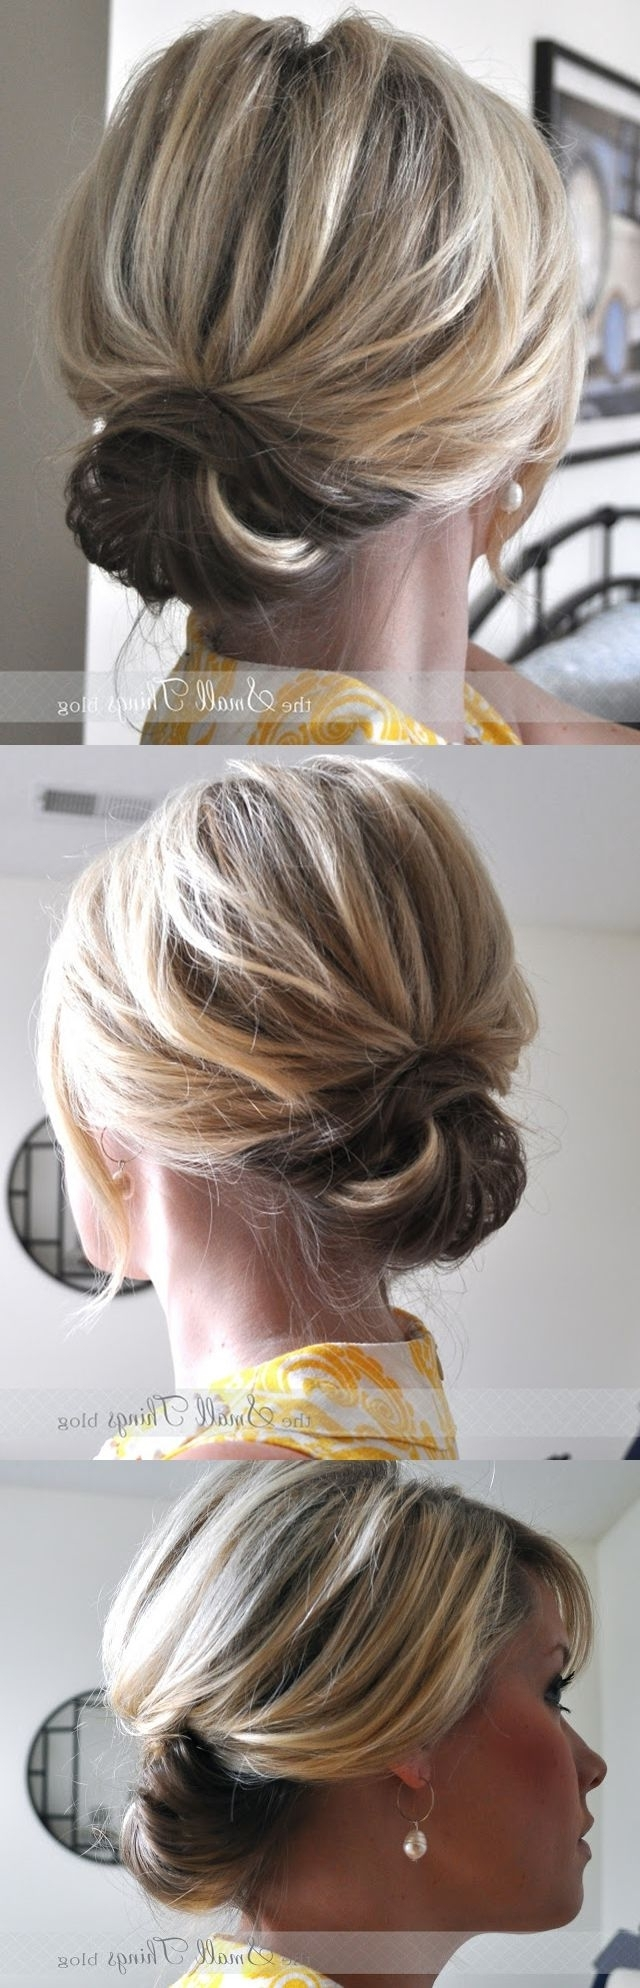 Hair Dos, Hair Ideas Inside Most Current Wedding Hairstyles For Short Brown Hair (View 6 of 15)